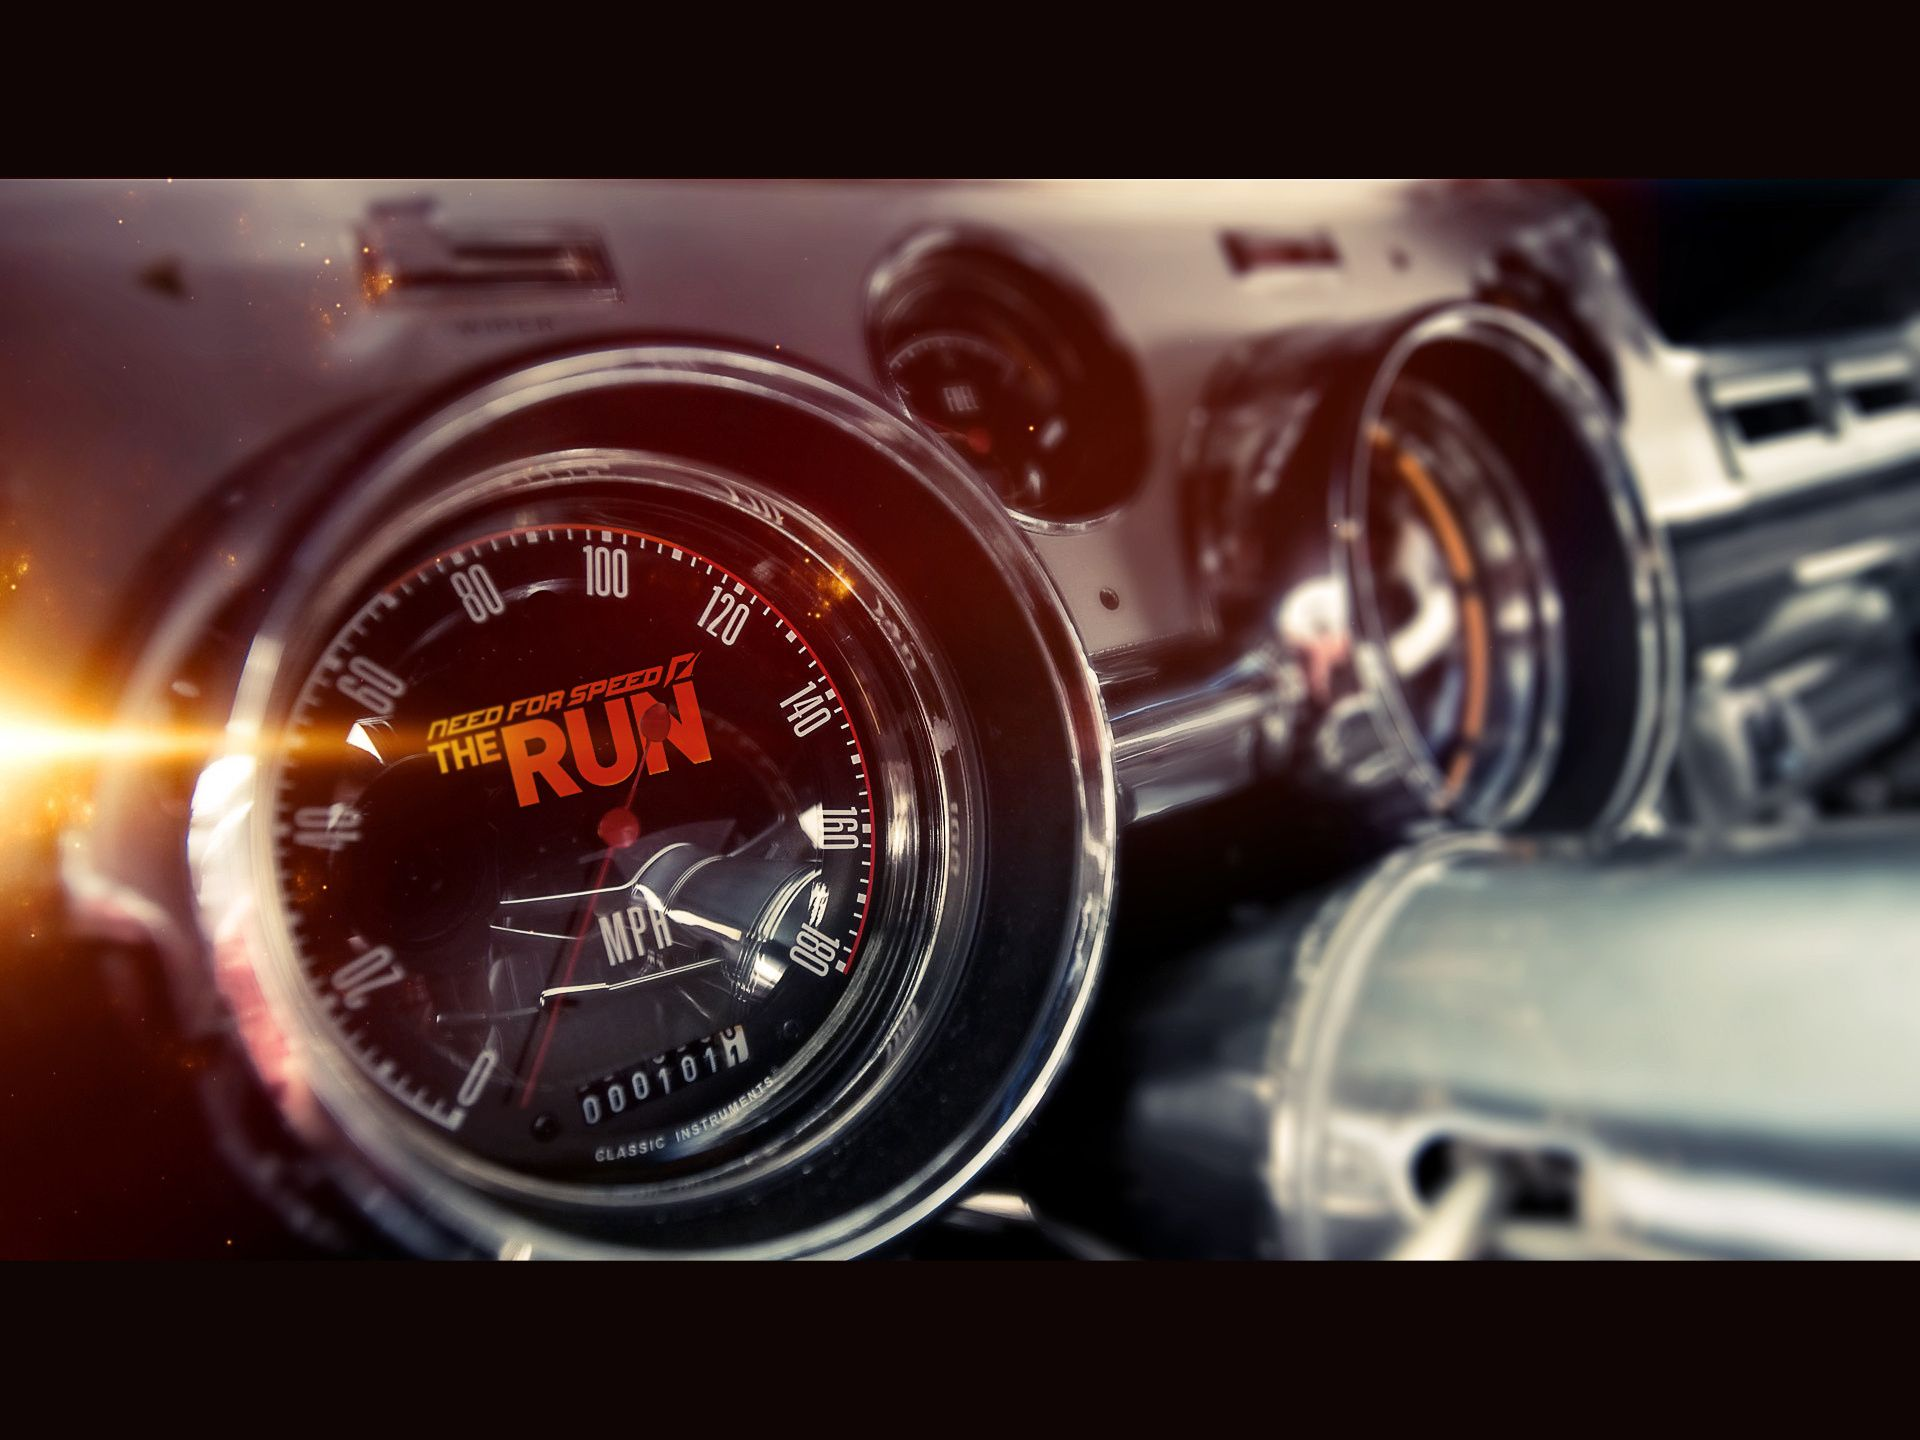 speed Need for speed need for speed the run. race nfs